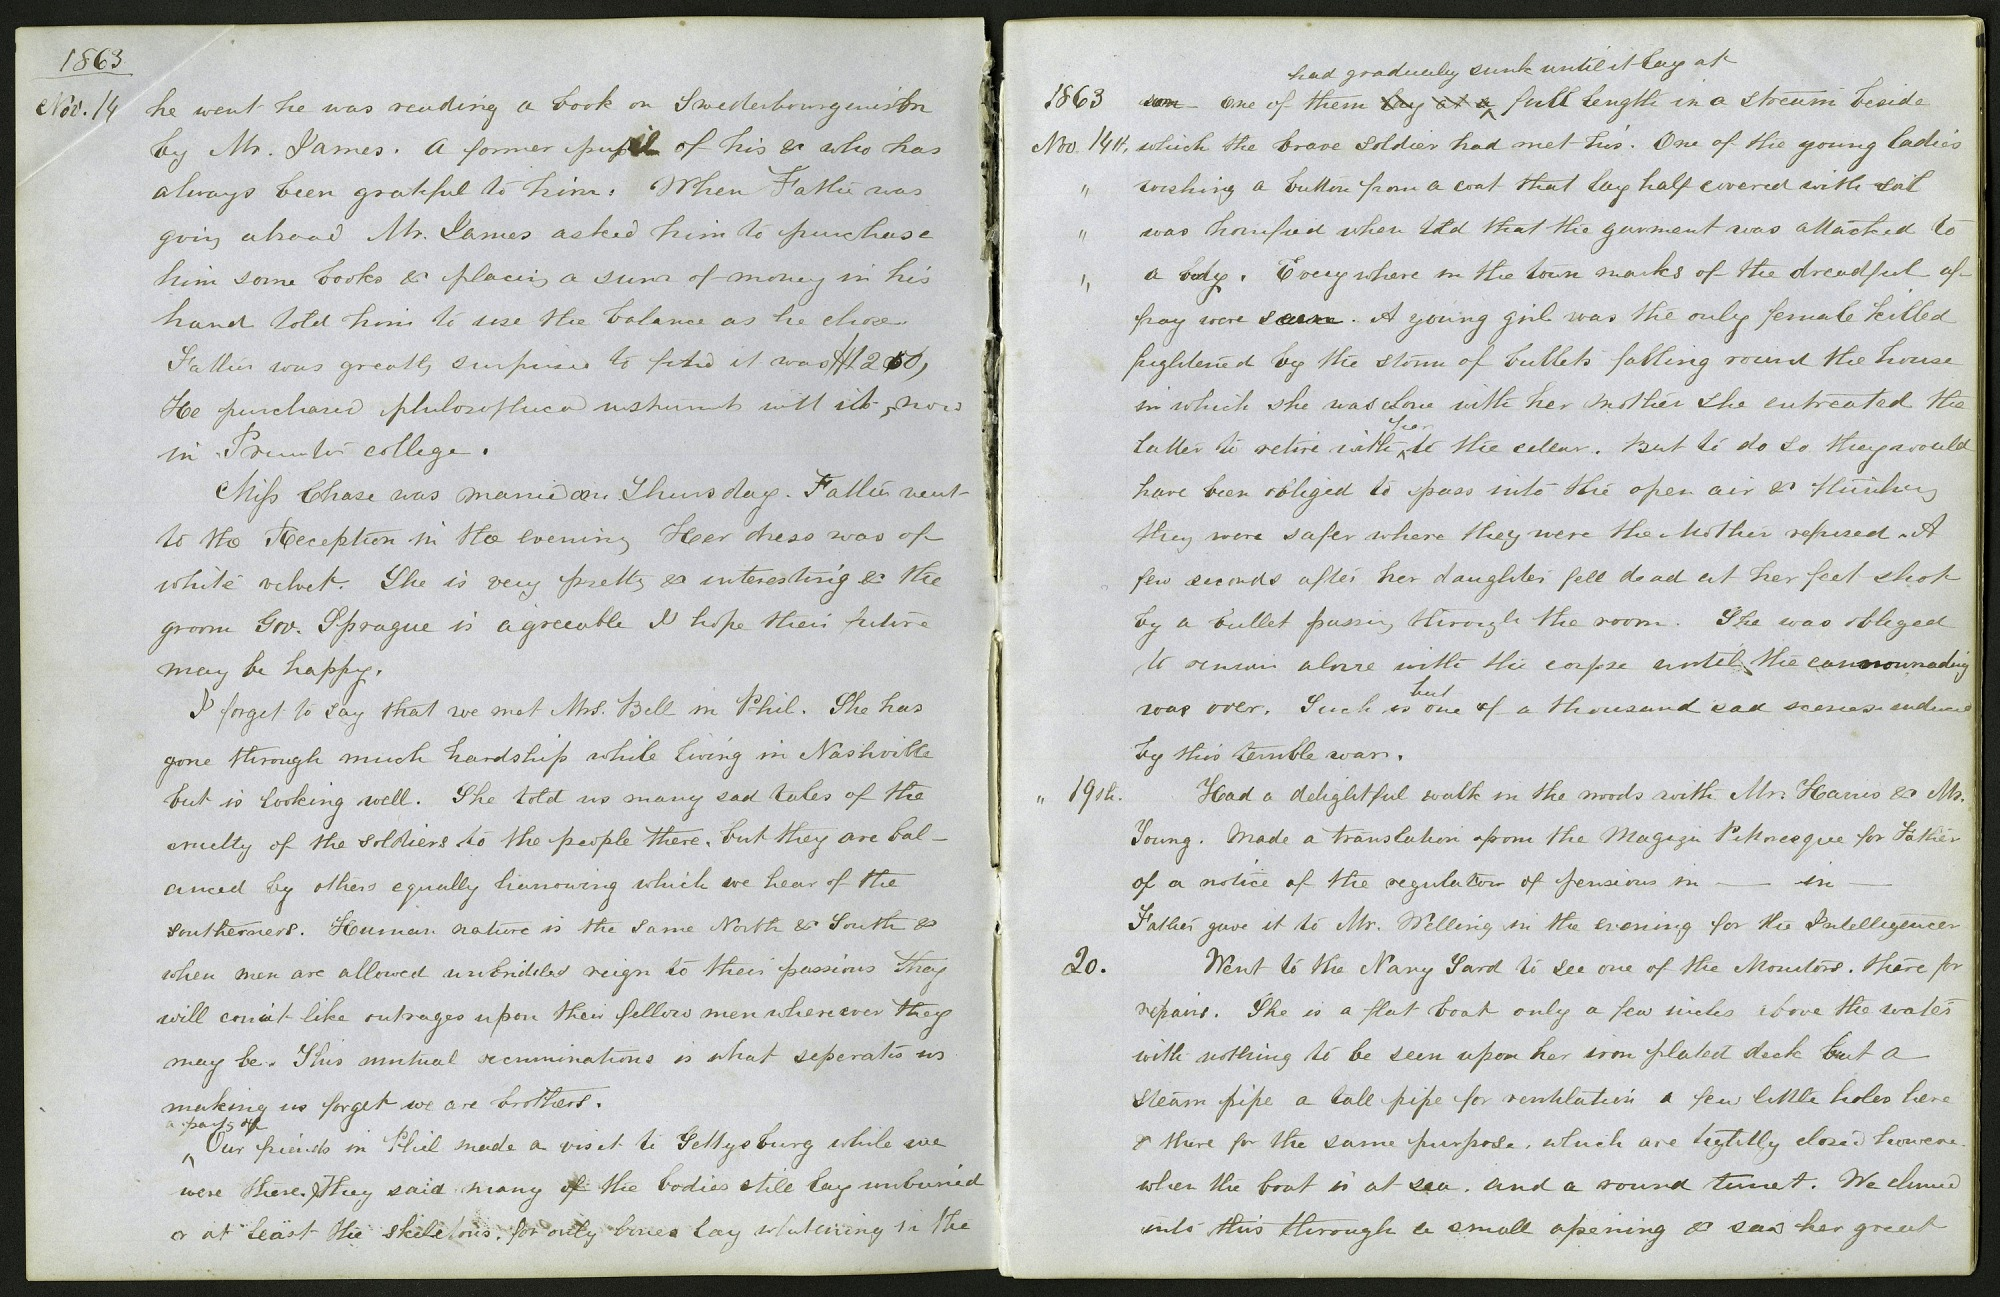 Mary Henry Diary Entry Visit to the Navy Yard to See an Ironclad, November 20, 1863